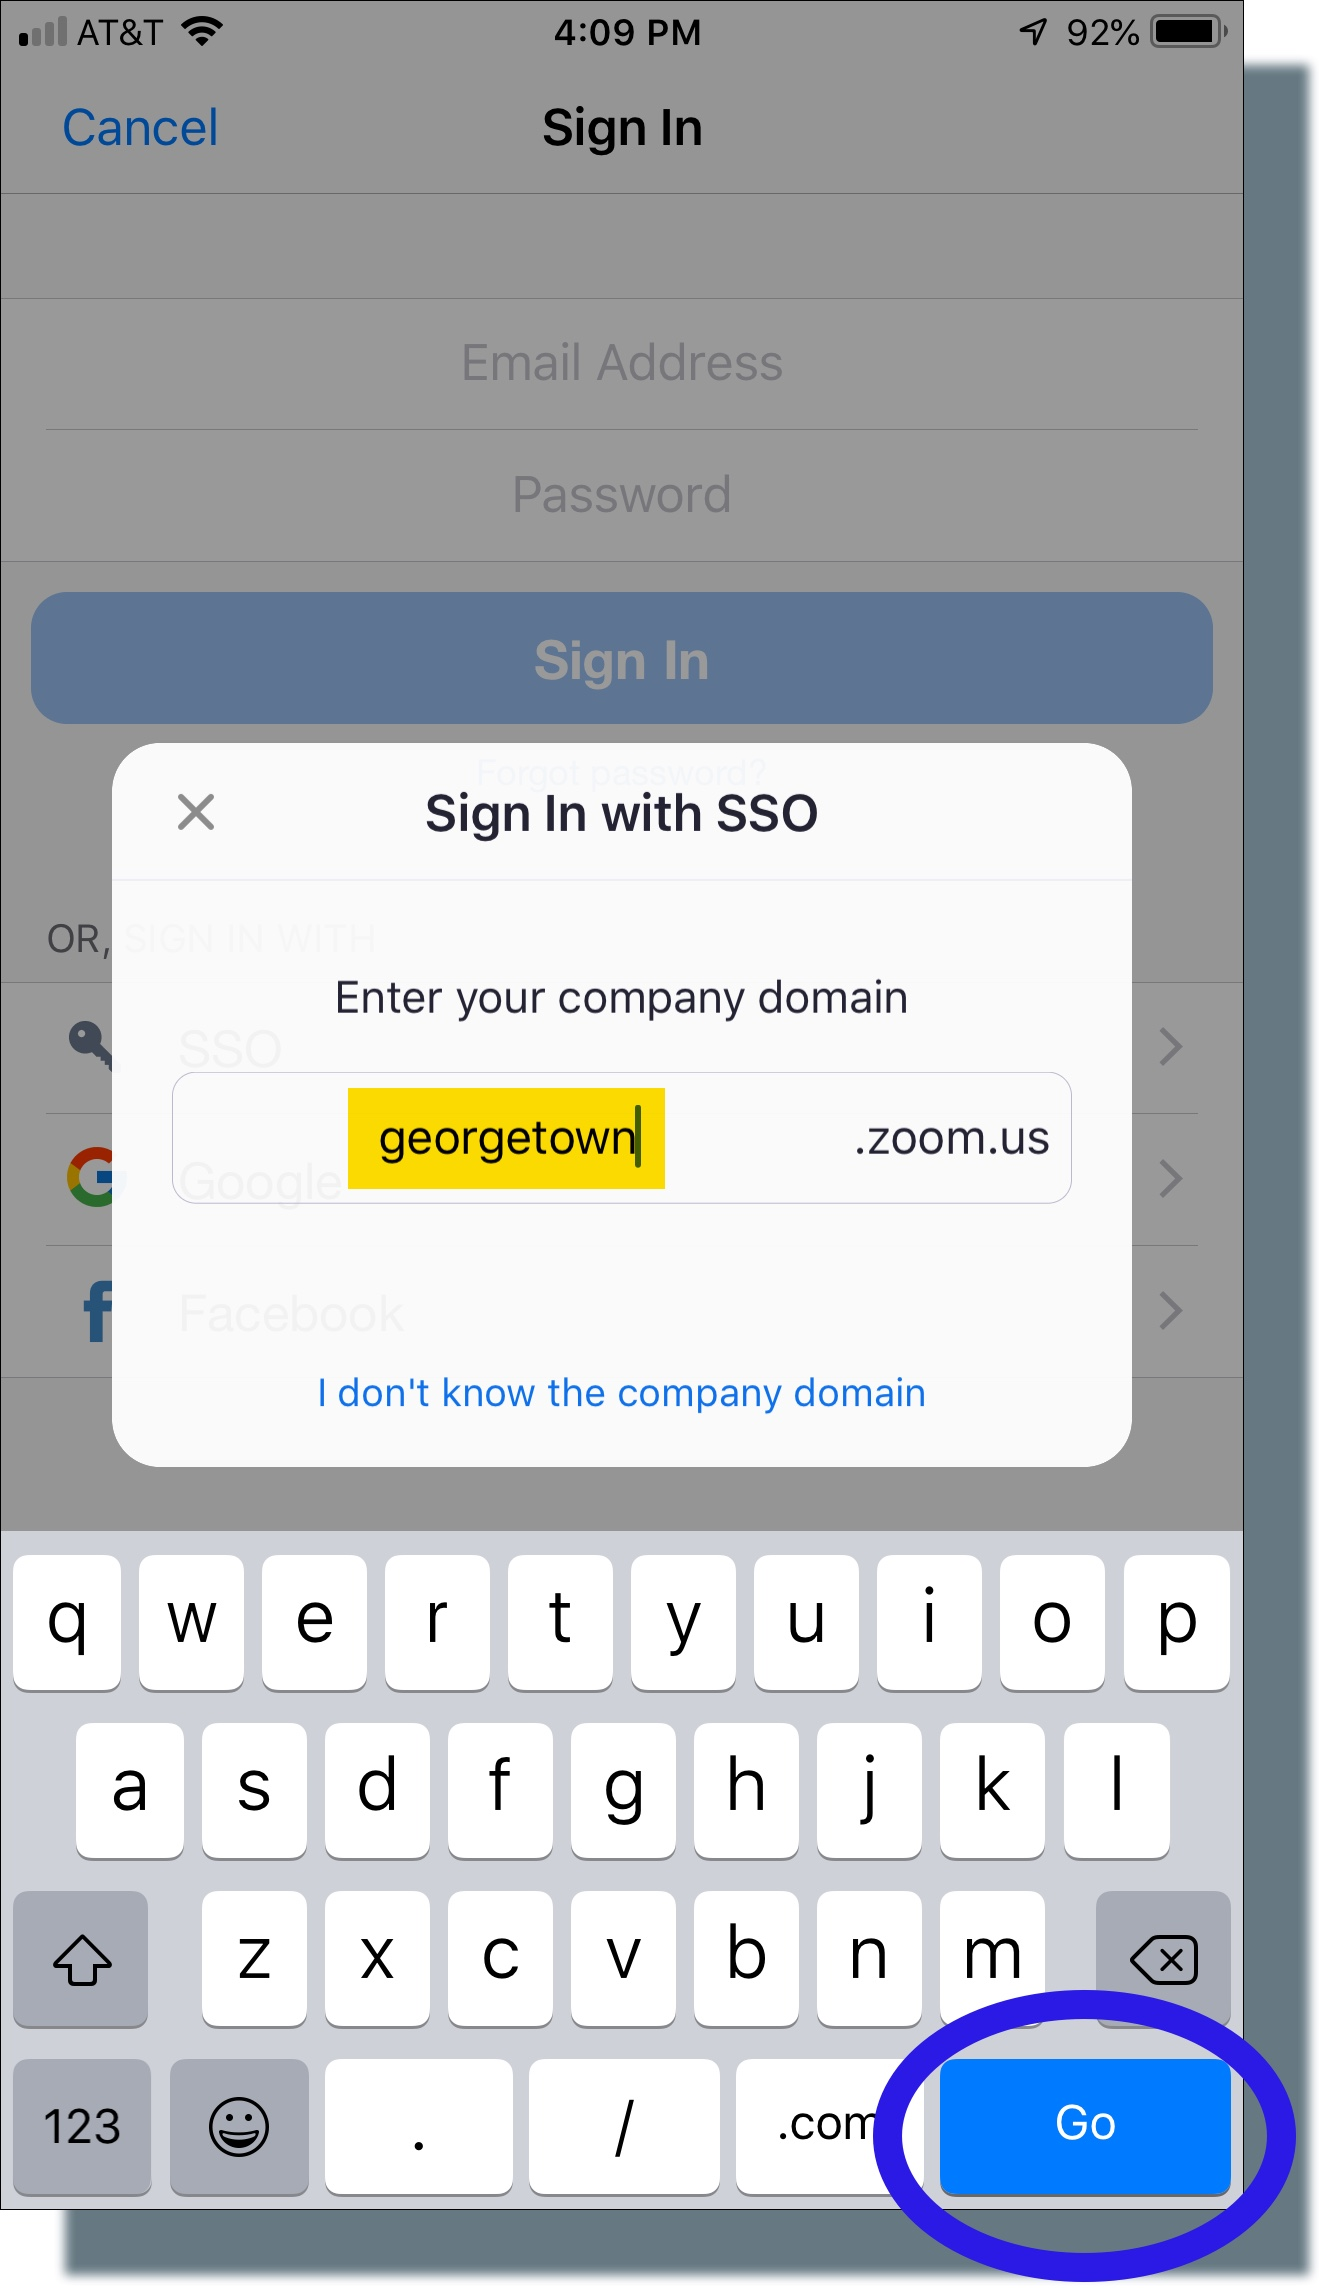 Make sure 'georgetown' is entered as company domain, then tap 'Go'